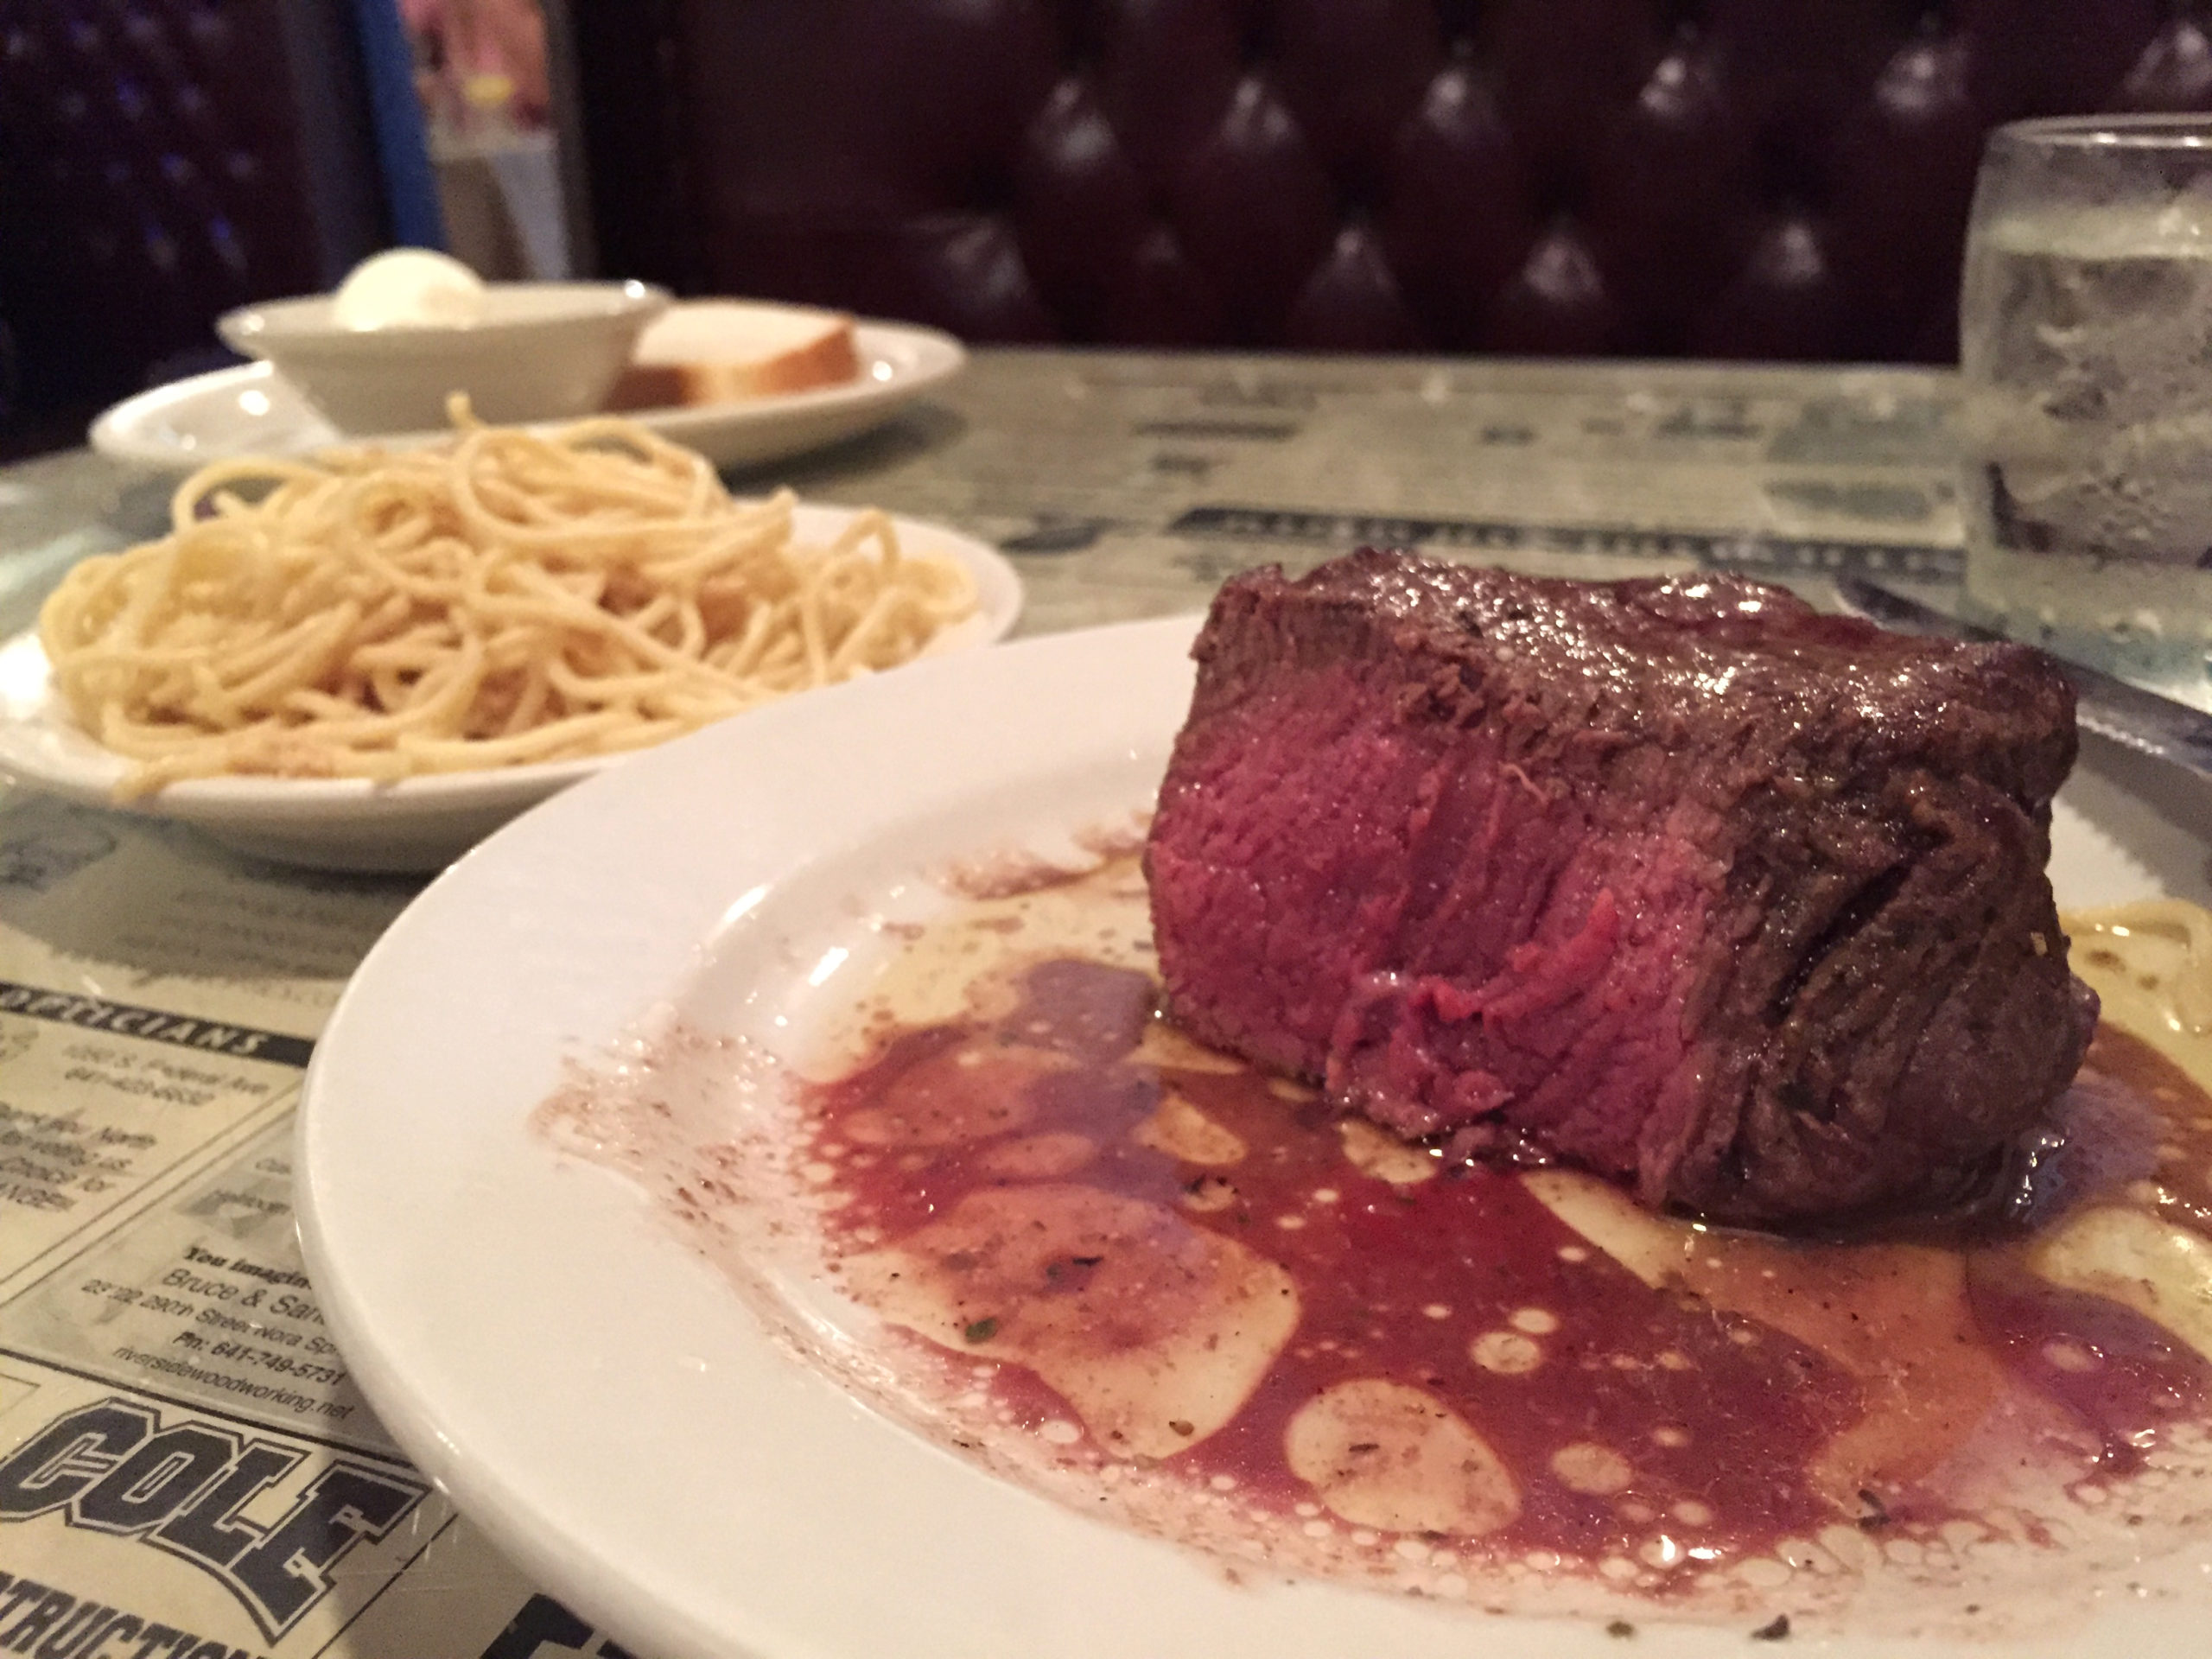 Medium rare steak with side of Greek spaghetti at Northwestern Steakhouse in Mason City, Iowa